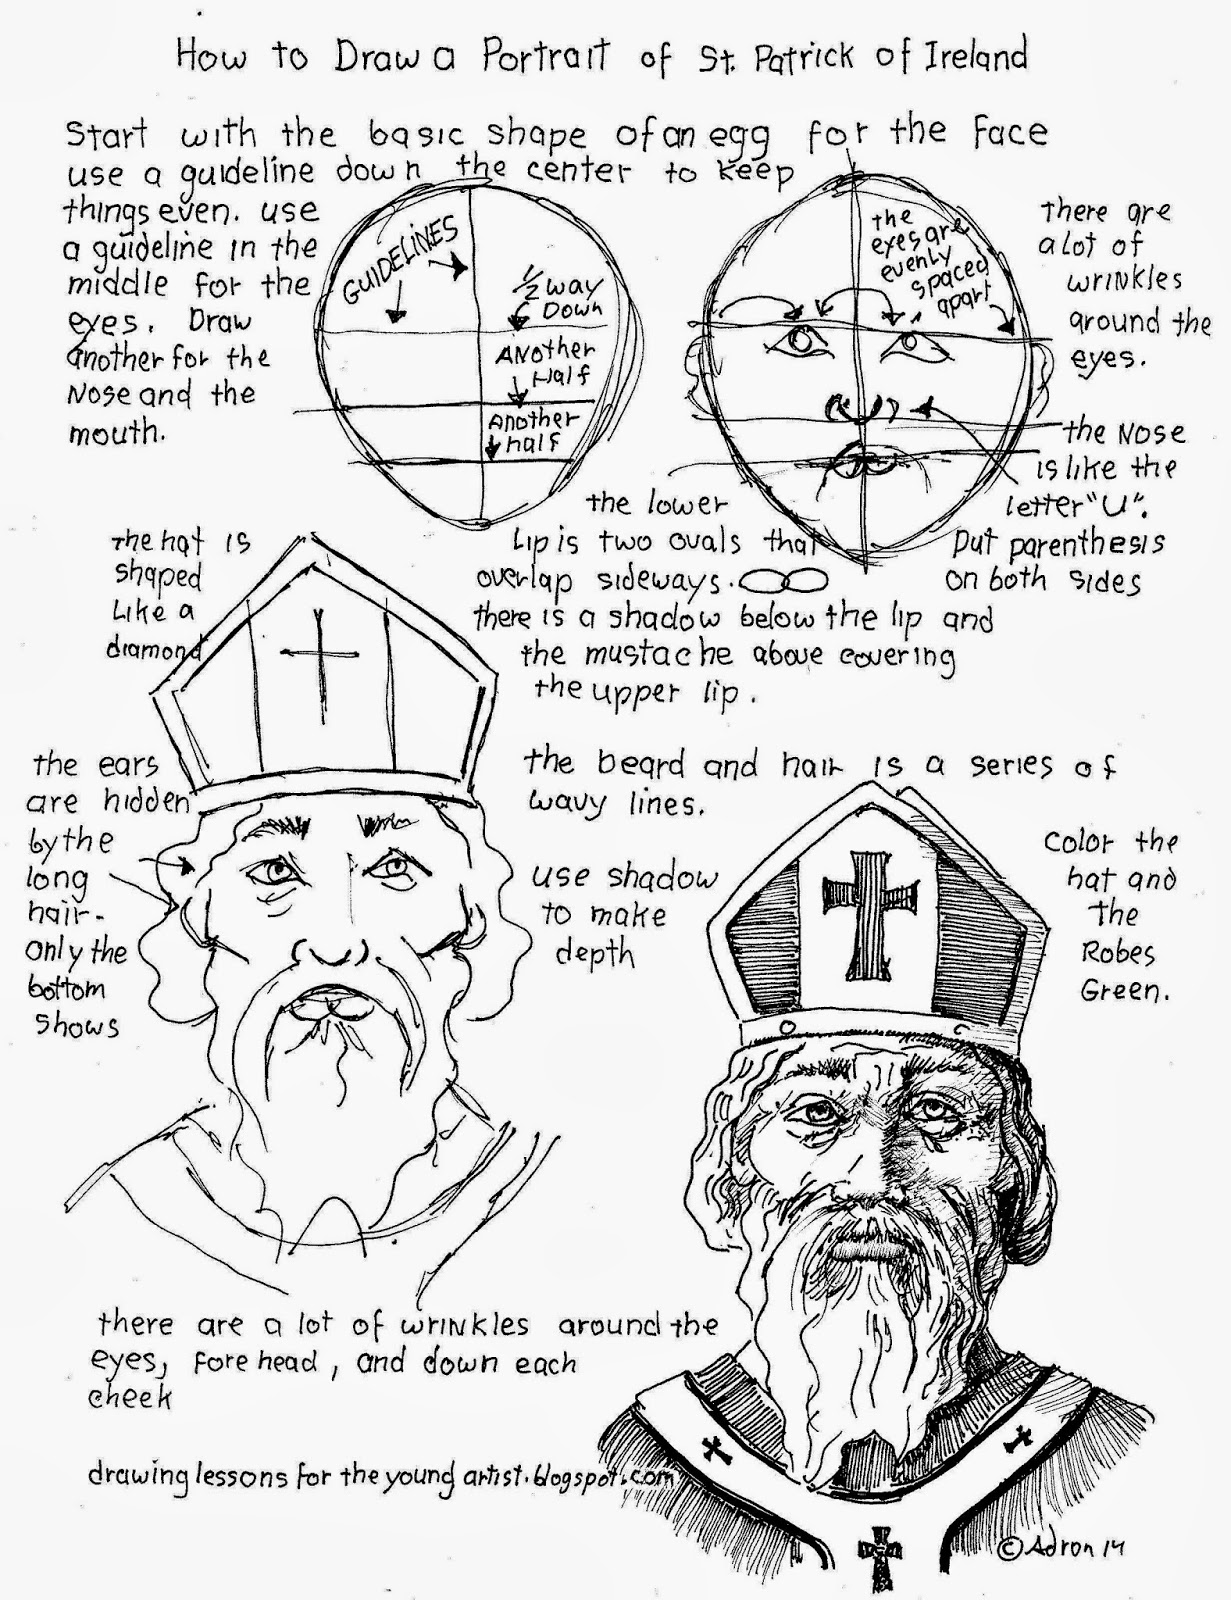 How To Draw Worksheets For The Young Artist How To Draw A Portrait Of St Patrick Of Ireland